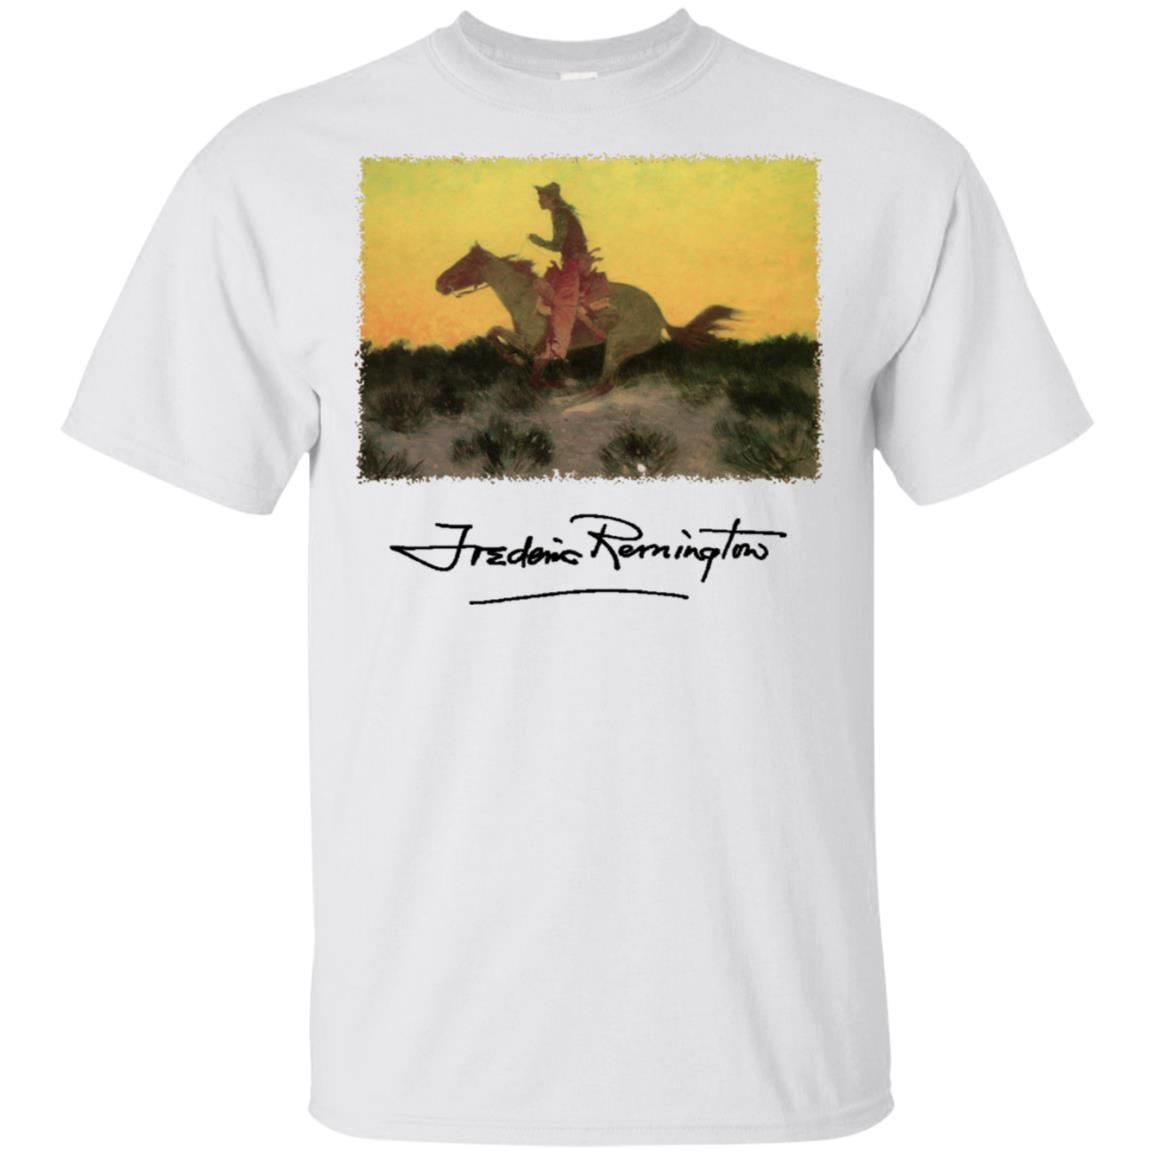 Western Cowboy on a Horse at Sunset by Remington Unisex Short Sleeve